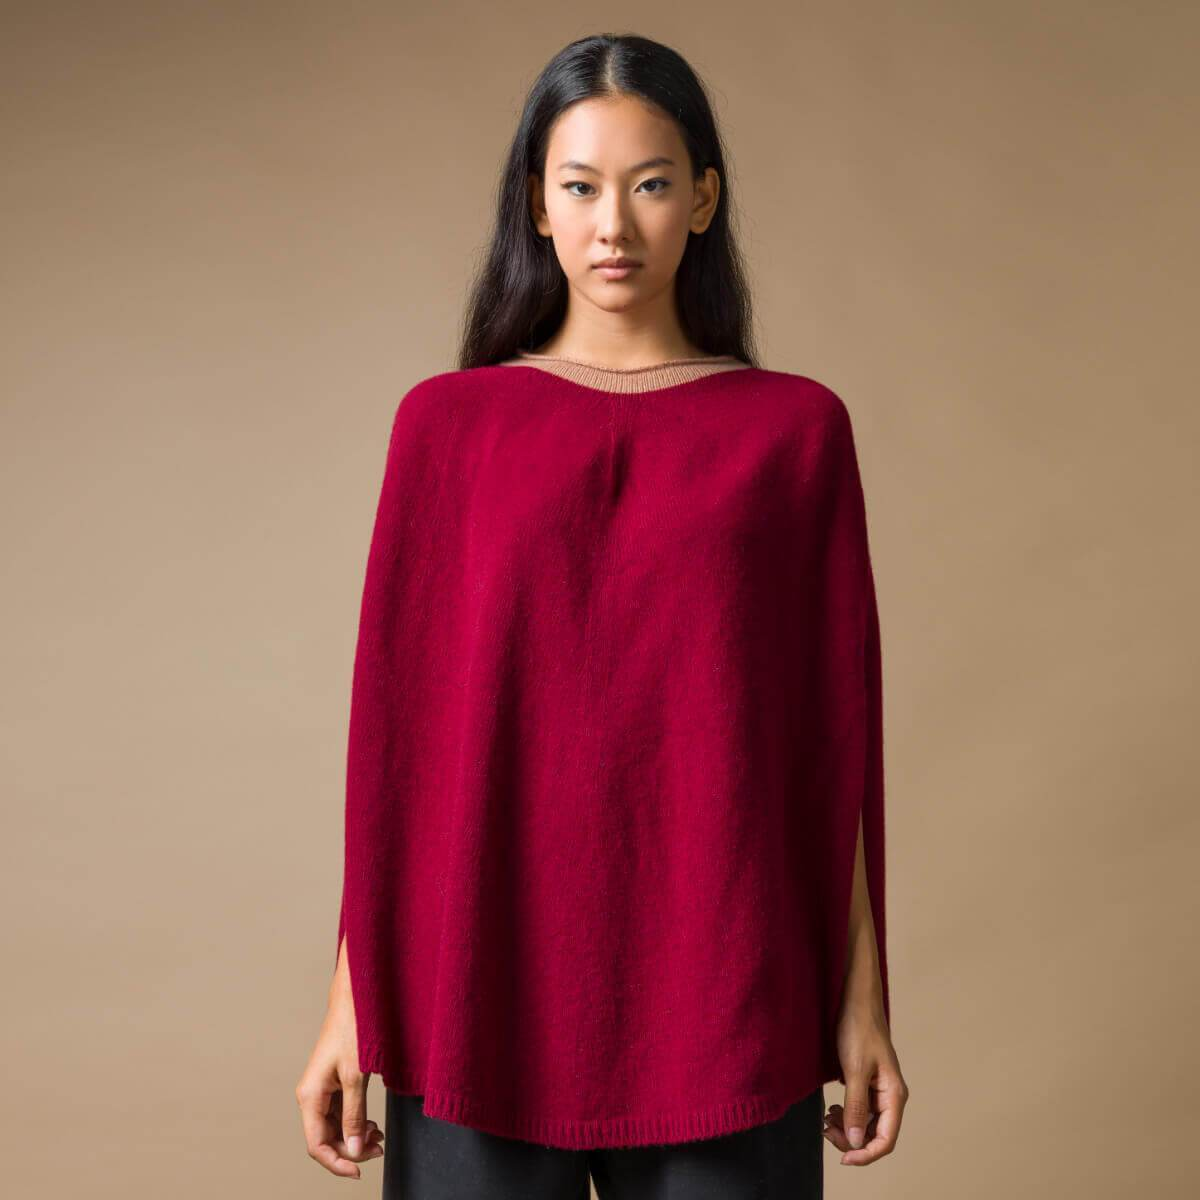 Recycled Cashmere Poncho Sophia